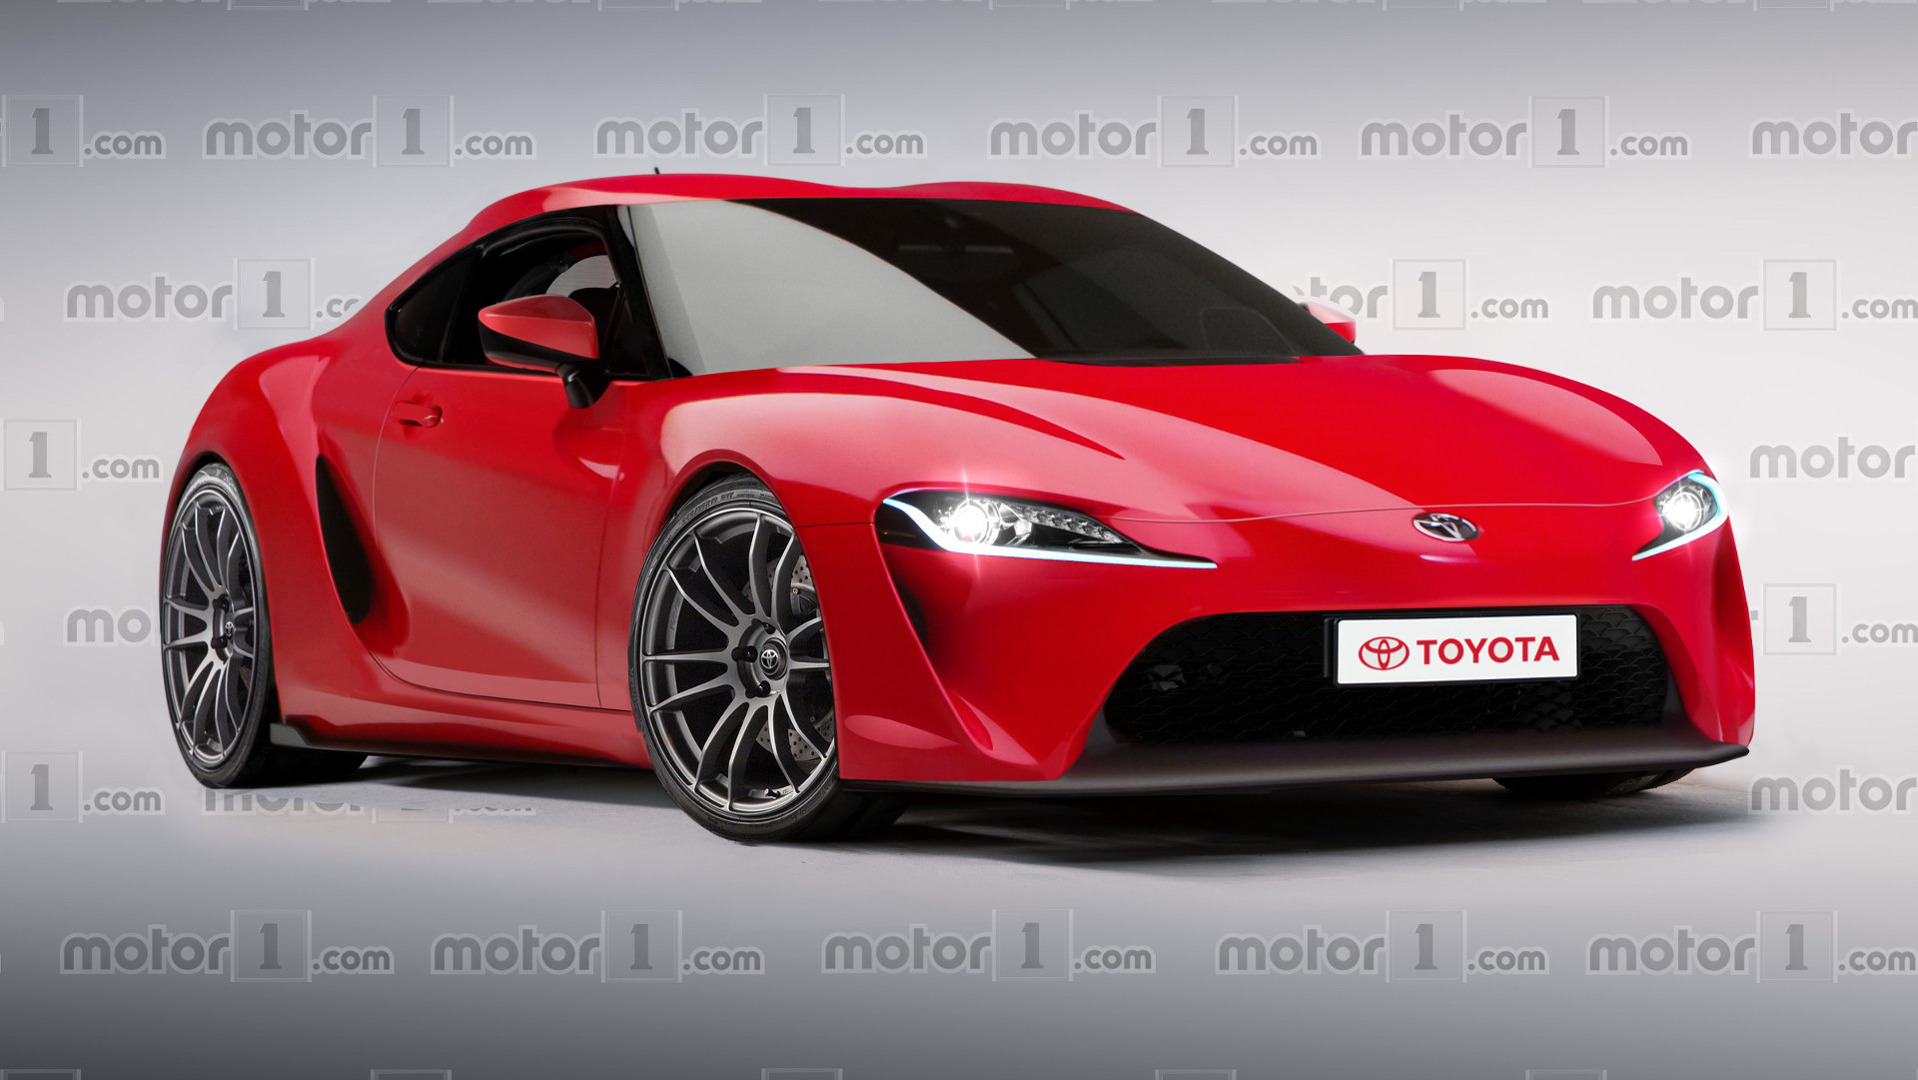 Toyota Supra Rumors 2019 2020 New Car Release Date 2011 Hyundai Sonata Aftermarket Stereo Wiring Diagram Toyotas Racing Division Planning Halo Model